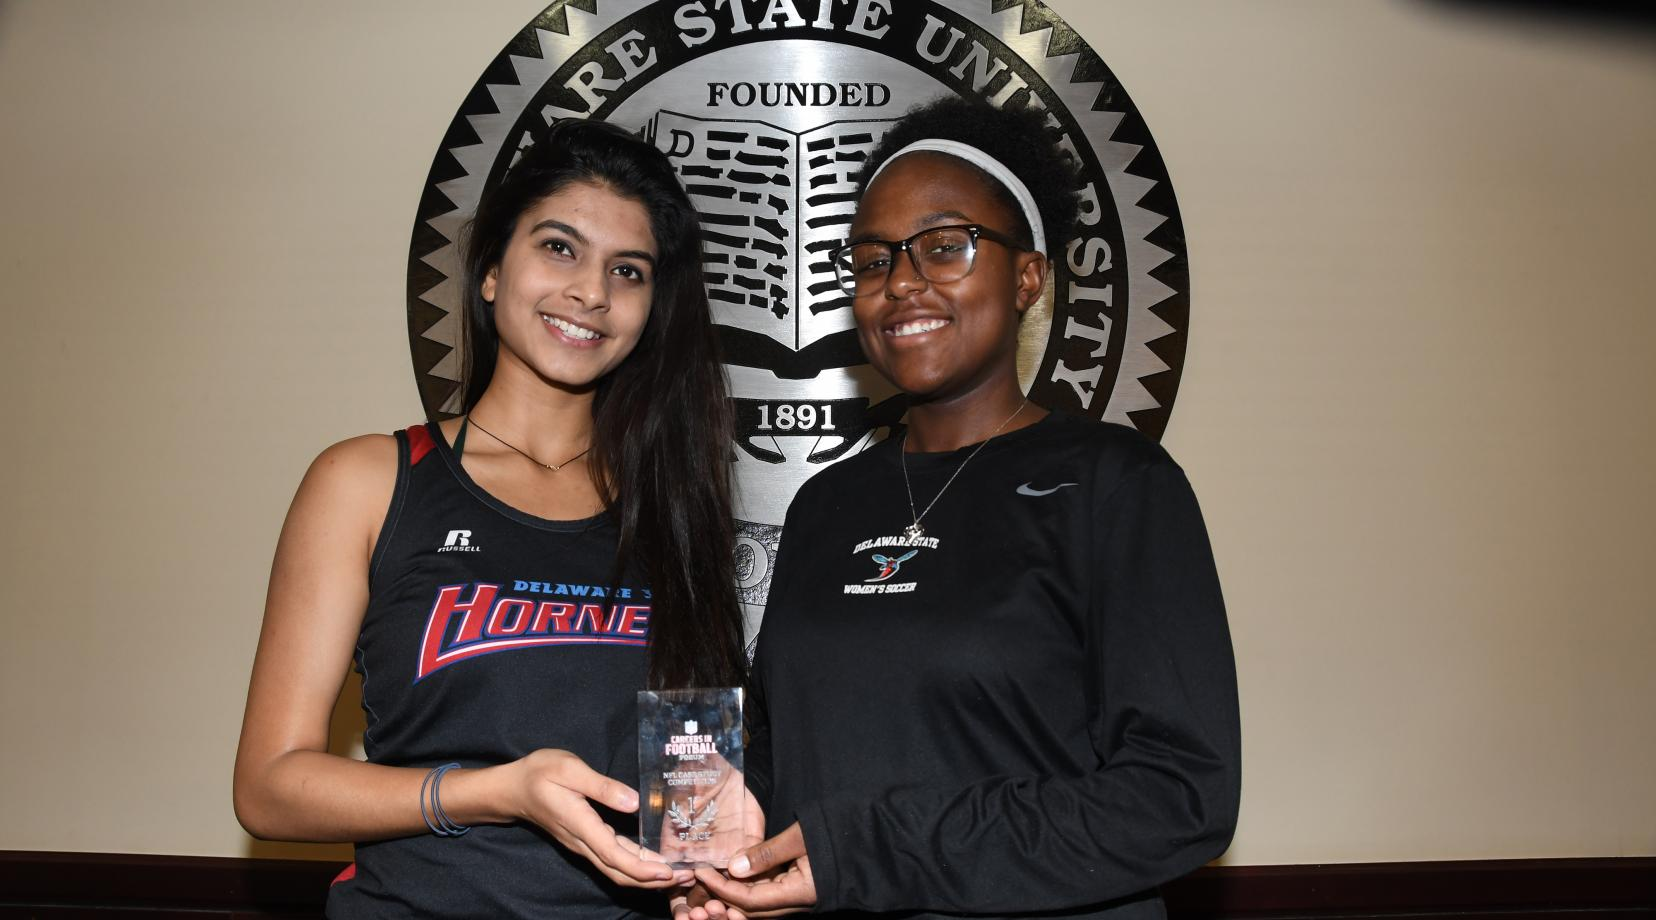 <p>(L-r) Aayushi Chouhan and Braxton Clark represented the University well as they were on the first and second place teams, respectively, in the Business Case Studies Competition at the recent NFL Careers in Football Forum held in Atlanta. The two are holding Ms. Chouhan&#039;s first-place trophy (Ms. Clark has already placed her second place trophy in her parent&#039;s home).</p>